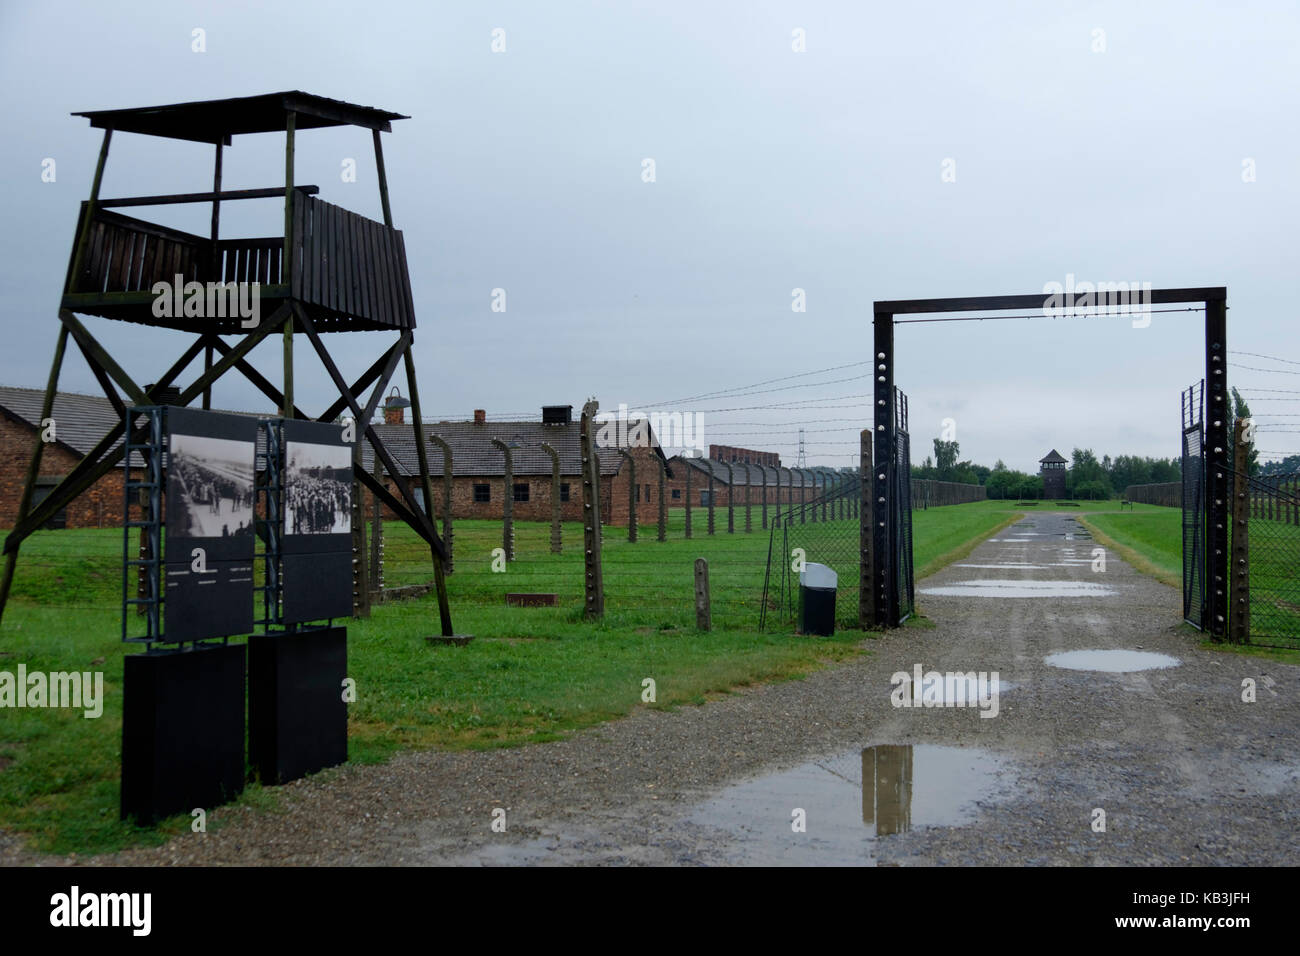 Watchtower and barracks at Auschwitz II Birkenau concentration camp, Poland - Stock Image